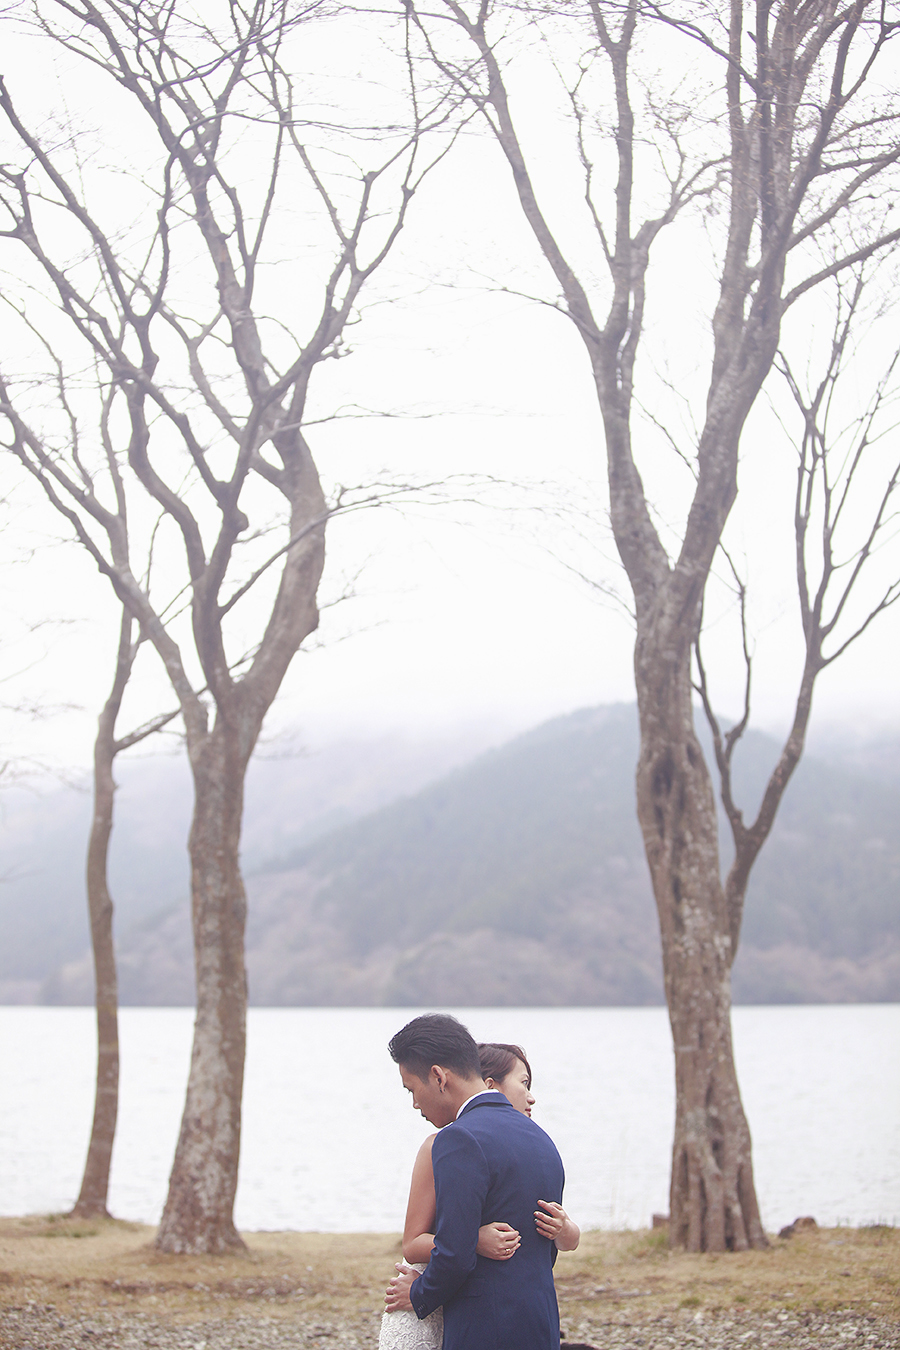 tokyo hakone japan spring sakura . engagement wedding photography by kurt ahs . ns + eu . 0373.jpg